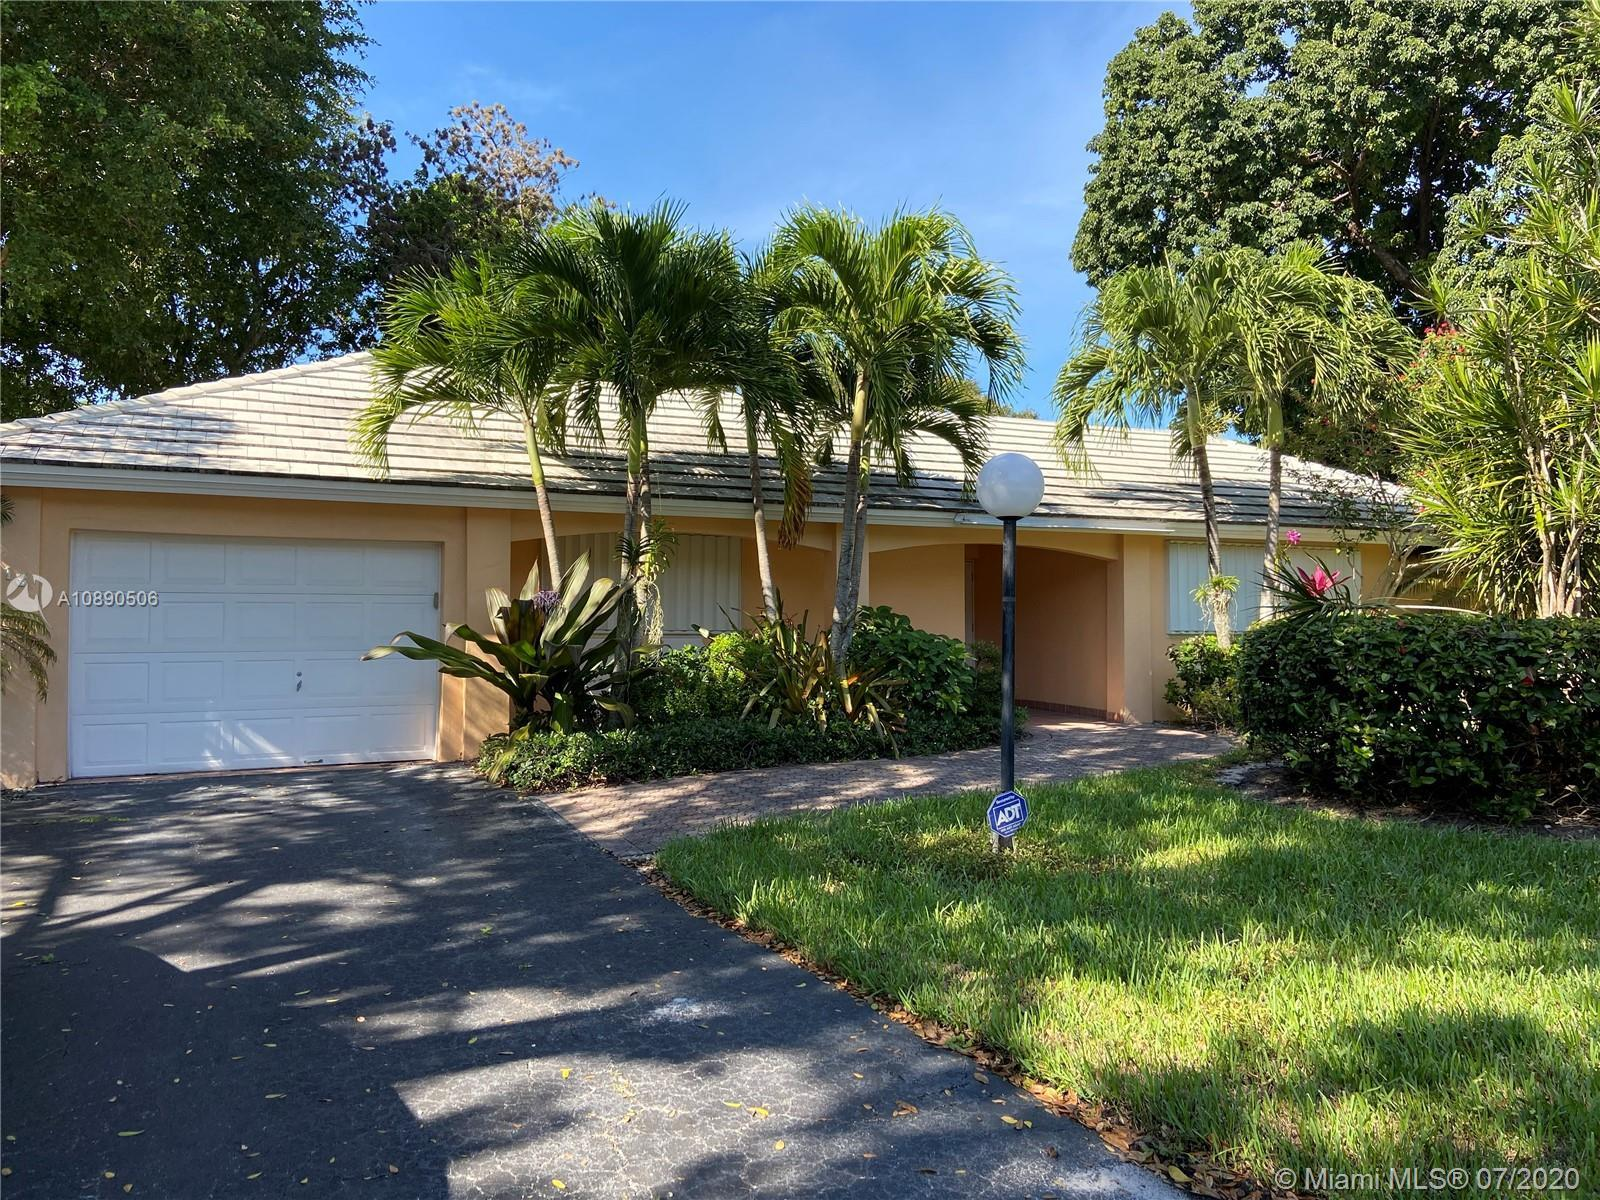 REDUCE PRICE FOR A QUICK SALE! Spacious Villa Substantially renovated in the Heart of Palm Aire with